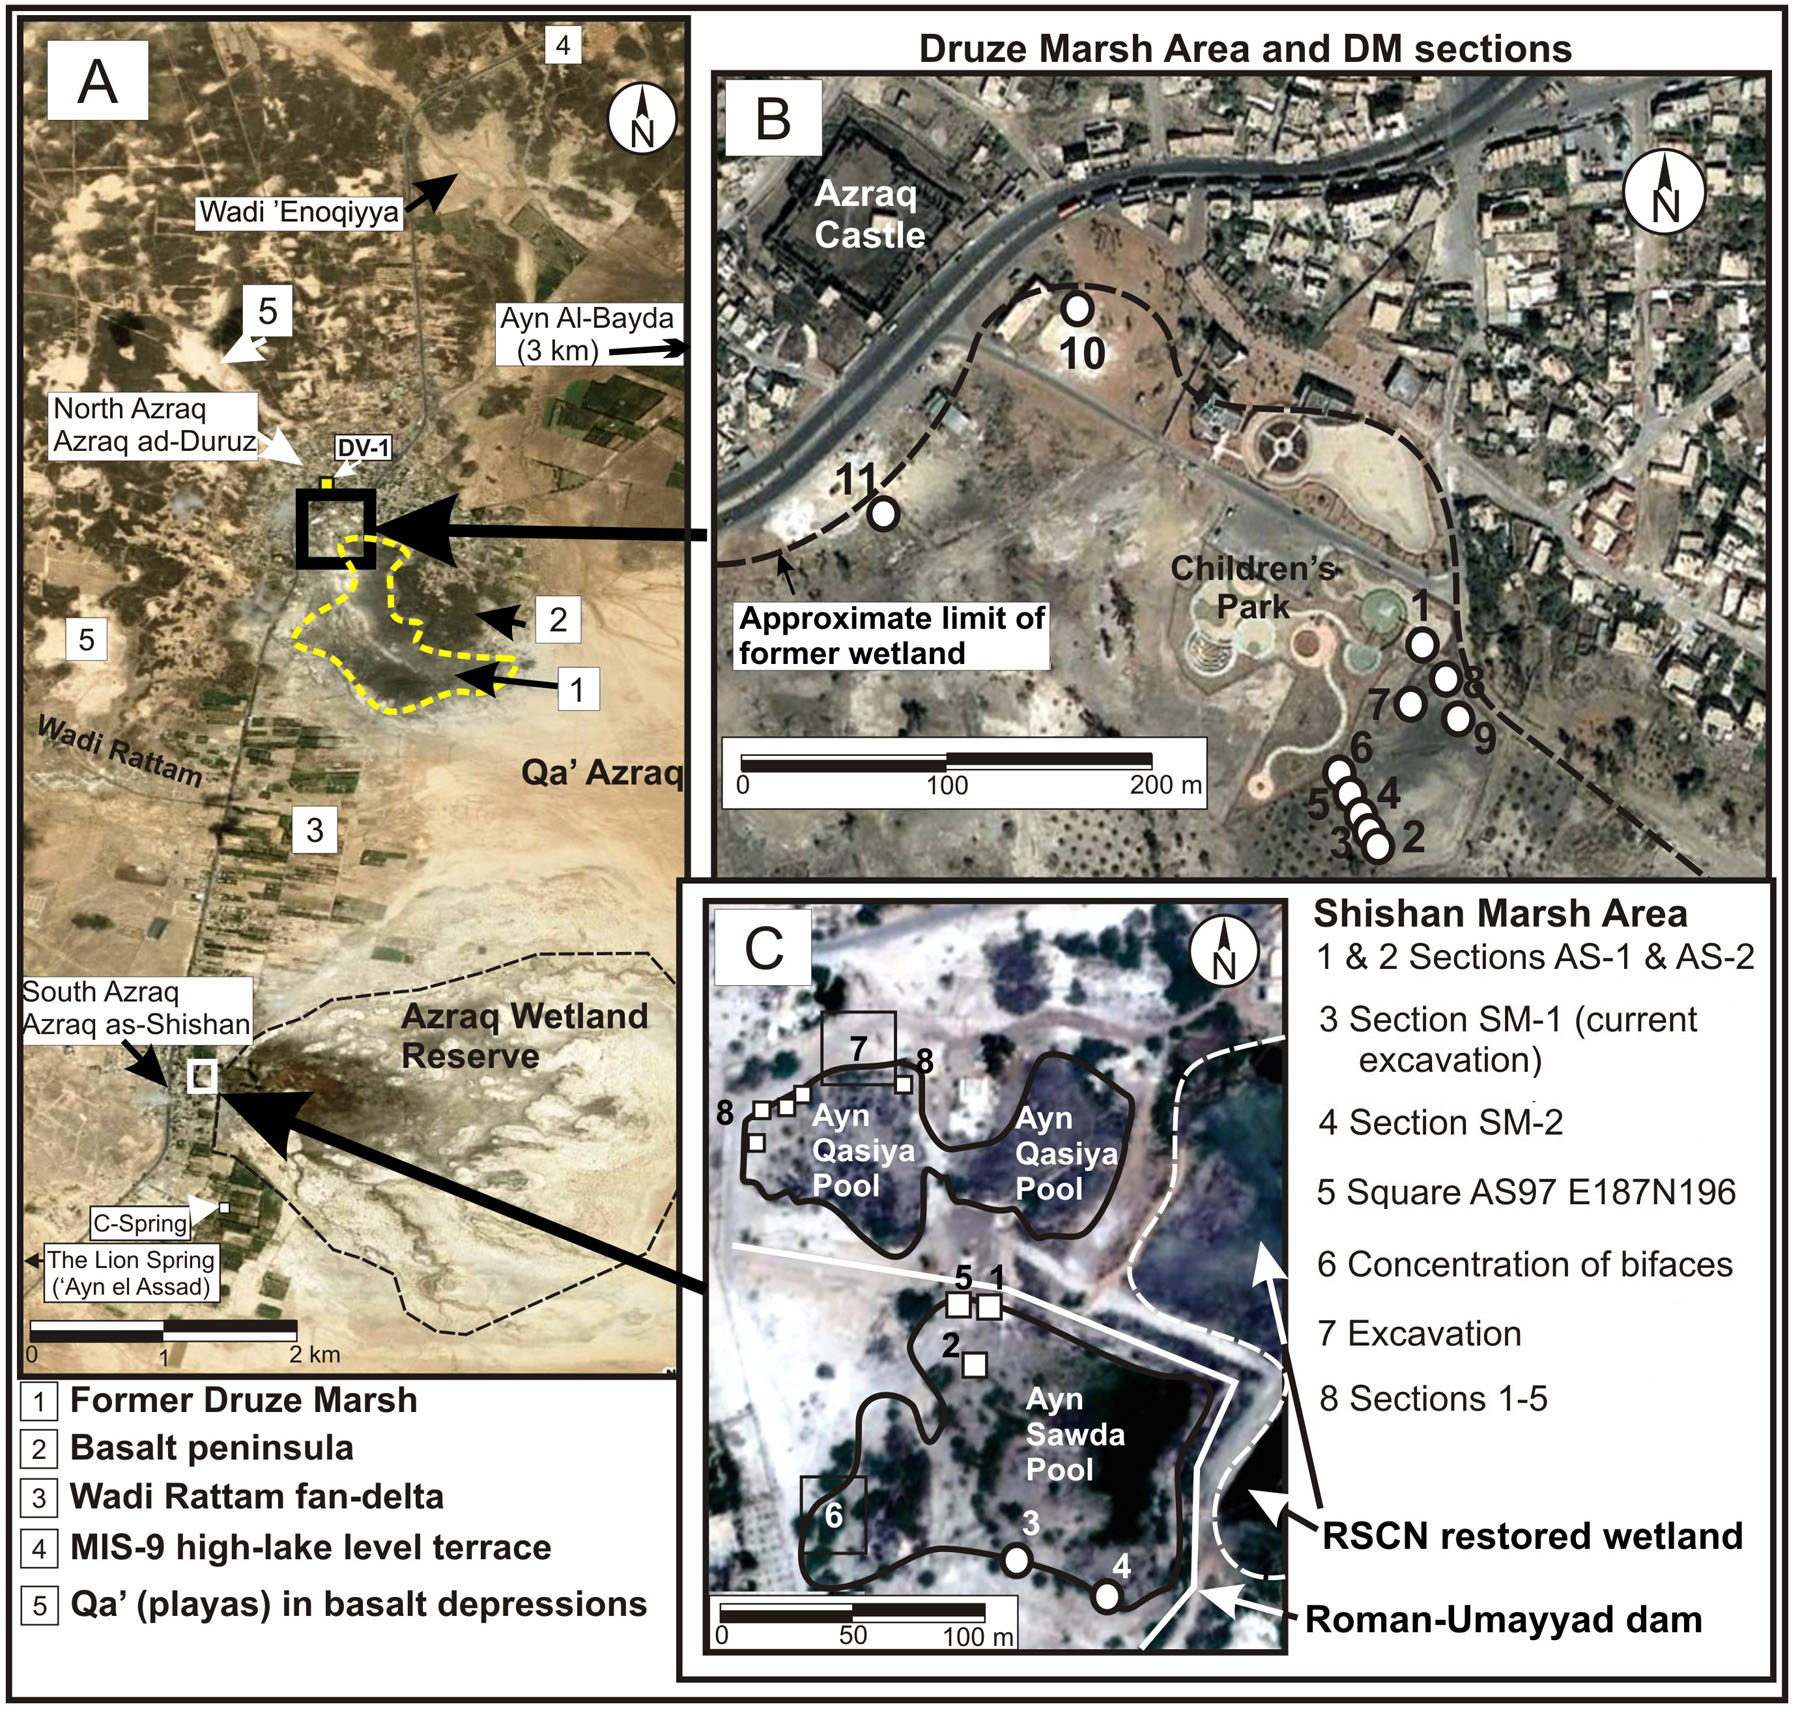 Fig. 4. Azraq Marshes: A, the Greater Azraq Oases Area, of which the Druze and Shishan Marshes are a part; B, the Druze Marsh, with the locations of the Azraq Marshes Archaeological and Paleoecological Project (AMAPP) team's excavations (circles); C, the Shishan Marsh area, with locations of the AMAPP team's excavations (circles) and previous excavations (squares) (courtesy Azraq Marshes Archaeological and Paleoecological Project).